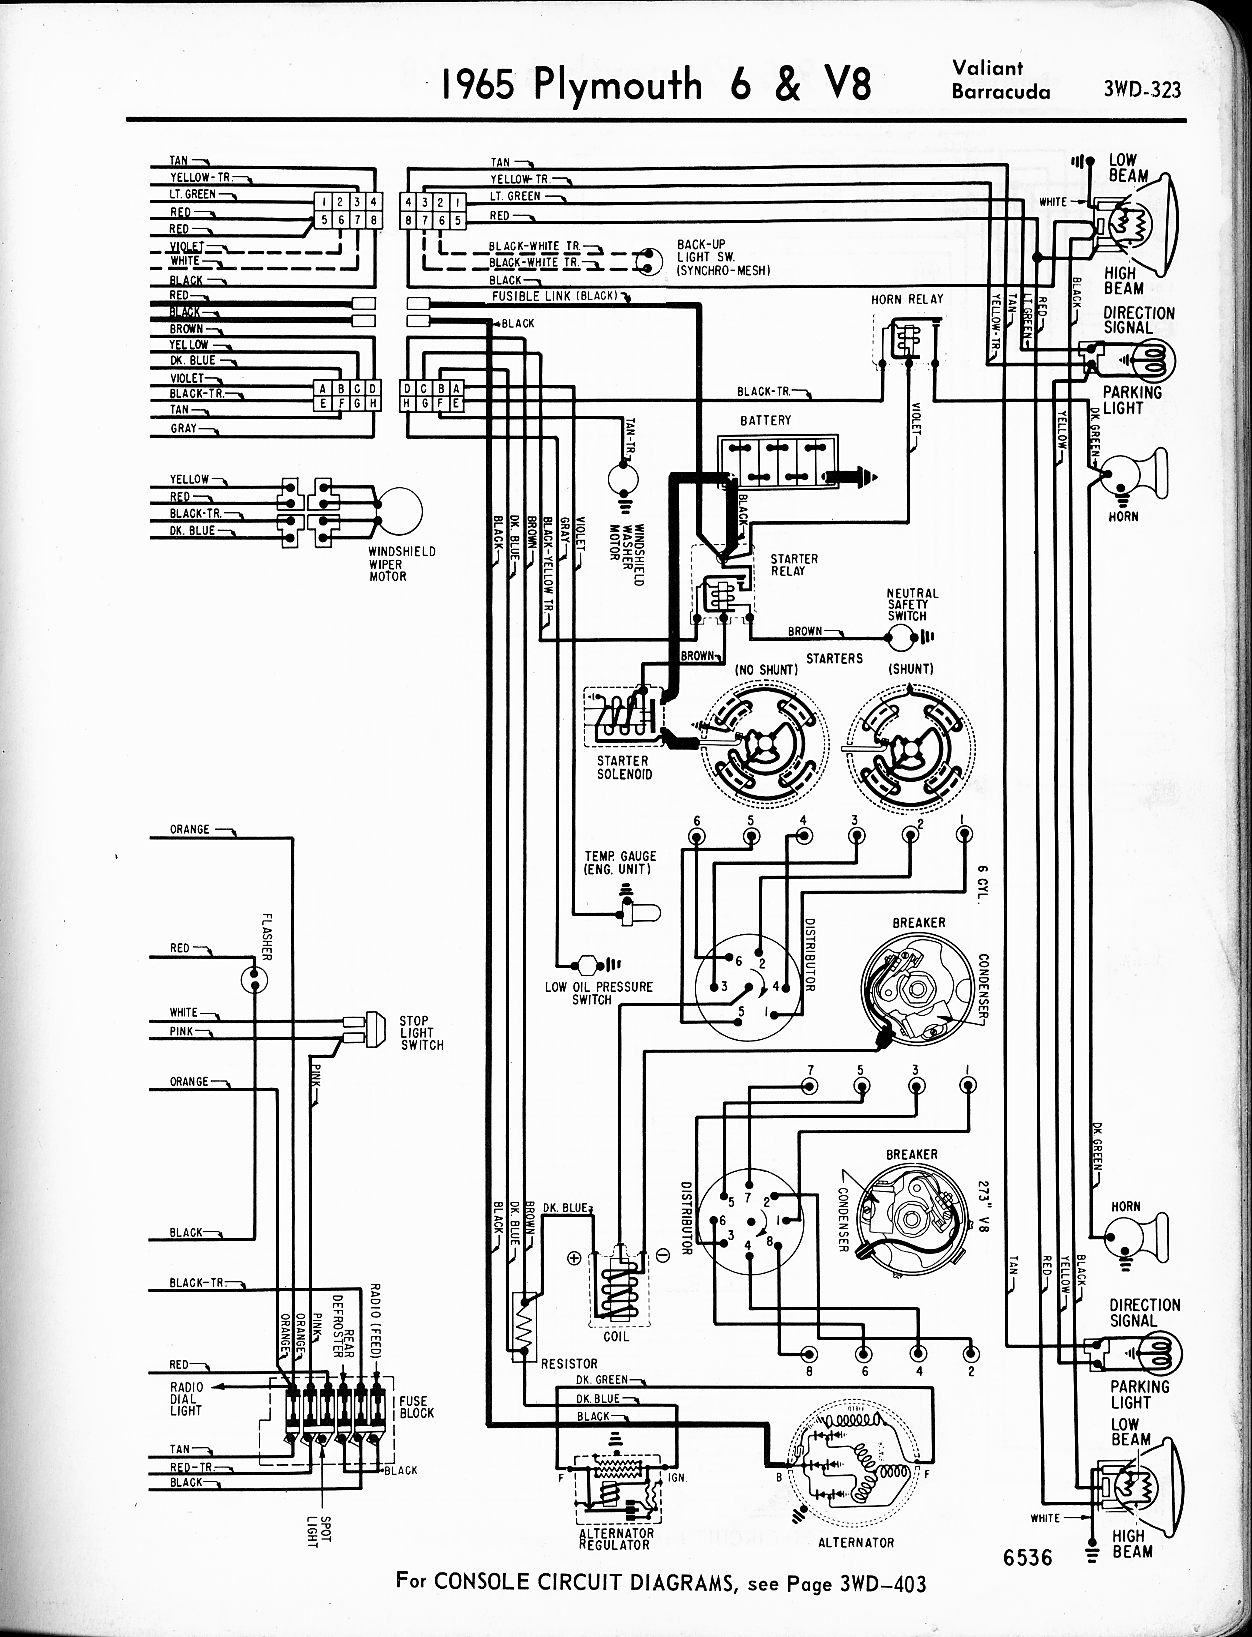 1966 barracuda dash wiring diagram schematic enthusiast wiring rh rasalibre co Dodge Ram Engine Wiring Harness Engine Wiring Harness Diagram